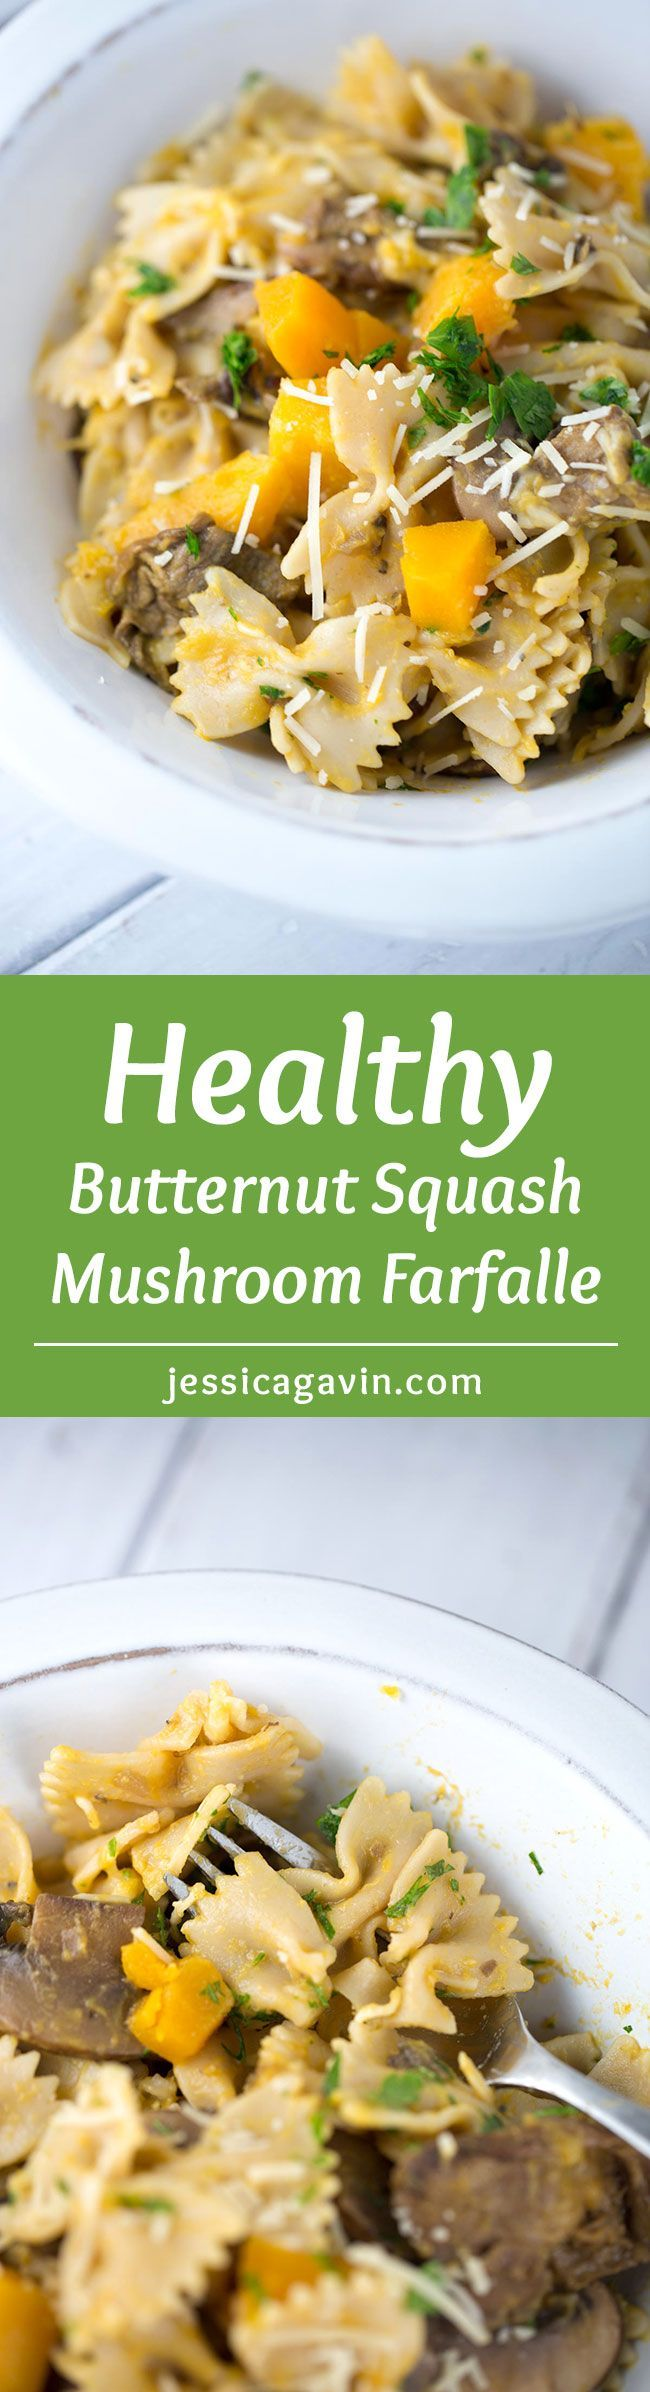 Butternut Squash Mushroom Farfalle Pasta - a healthy recipe packed with vegetables. Tender pasta is tossed with porcini mushrooms and Parmesan cheese   jessicagavin.com